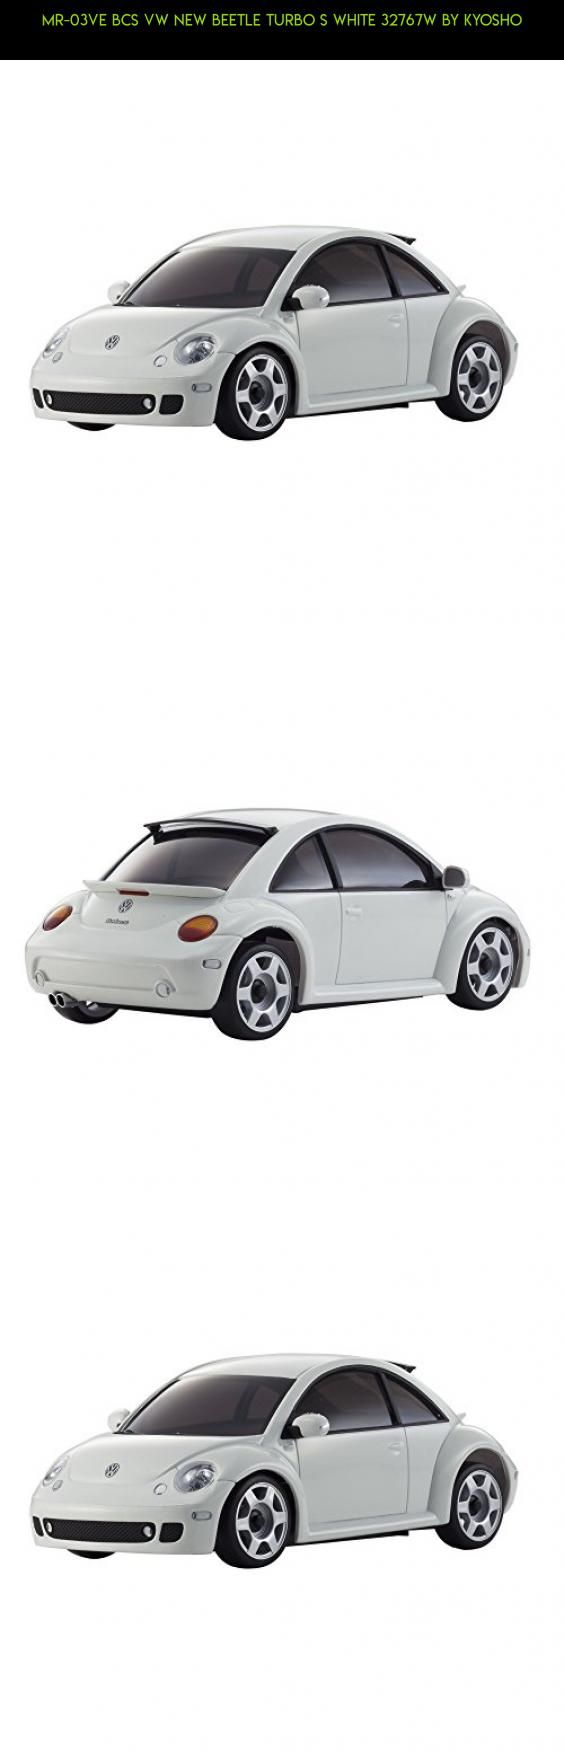 MR-03VE BCS VW New Beetle Turbo S White 32767W by Kyosho #beetle #kit #fpv #technology #plans #gadgets #shopping #products #kyosho #racing #camera #parts #tech #drone